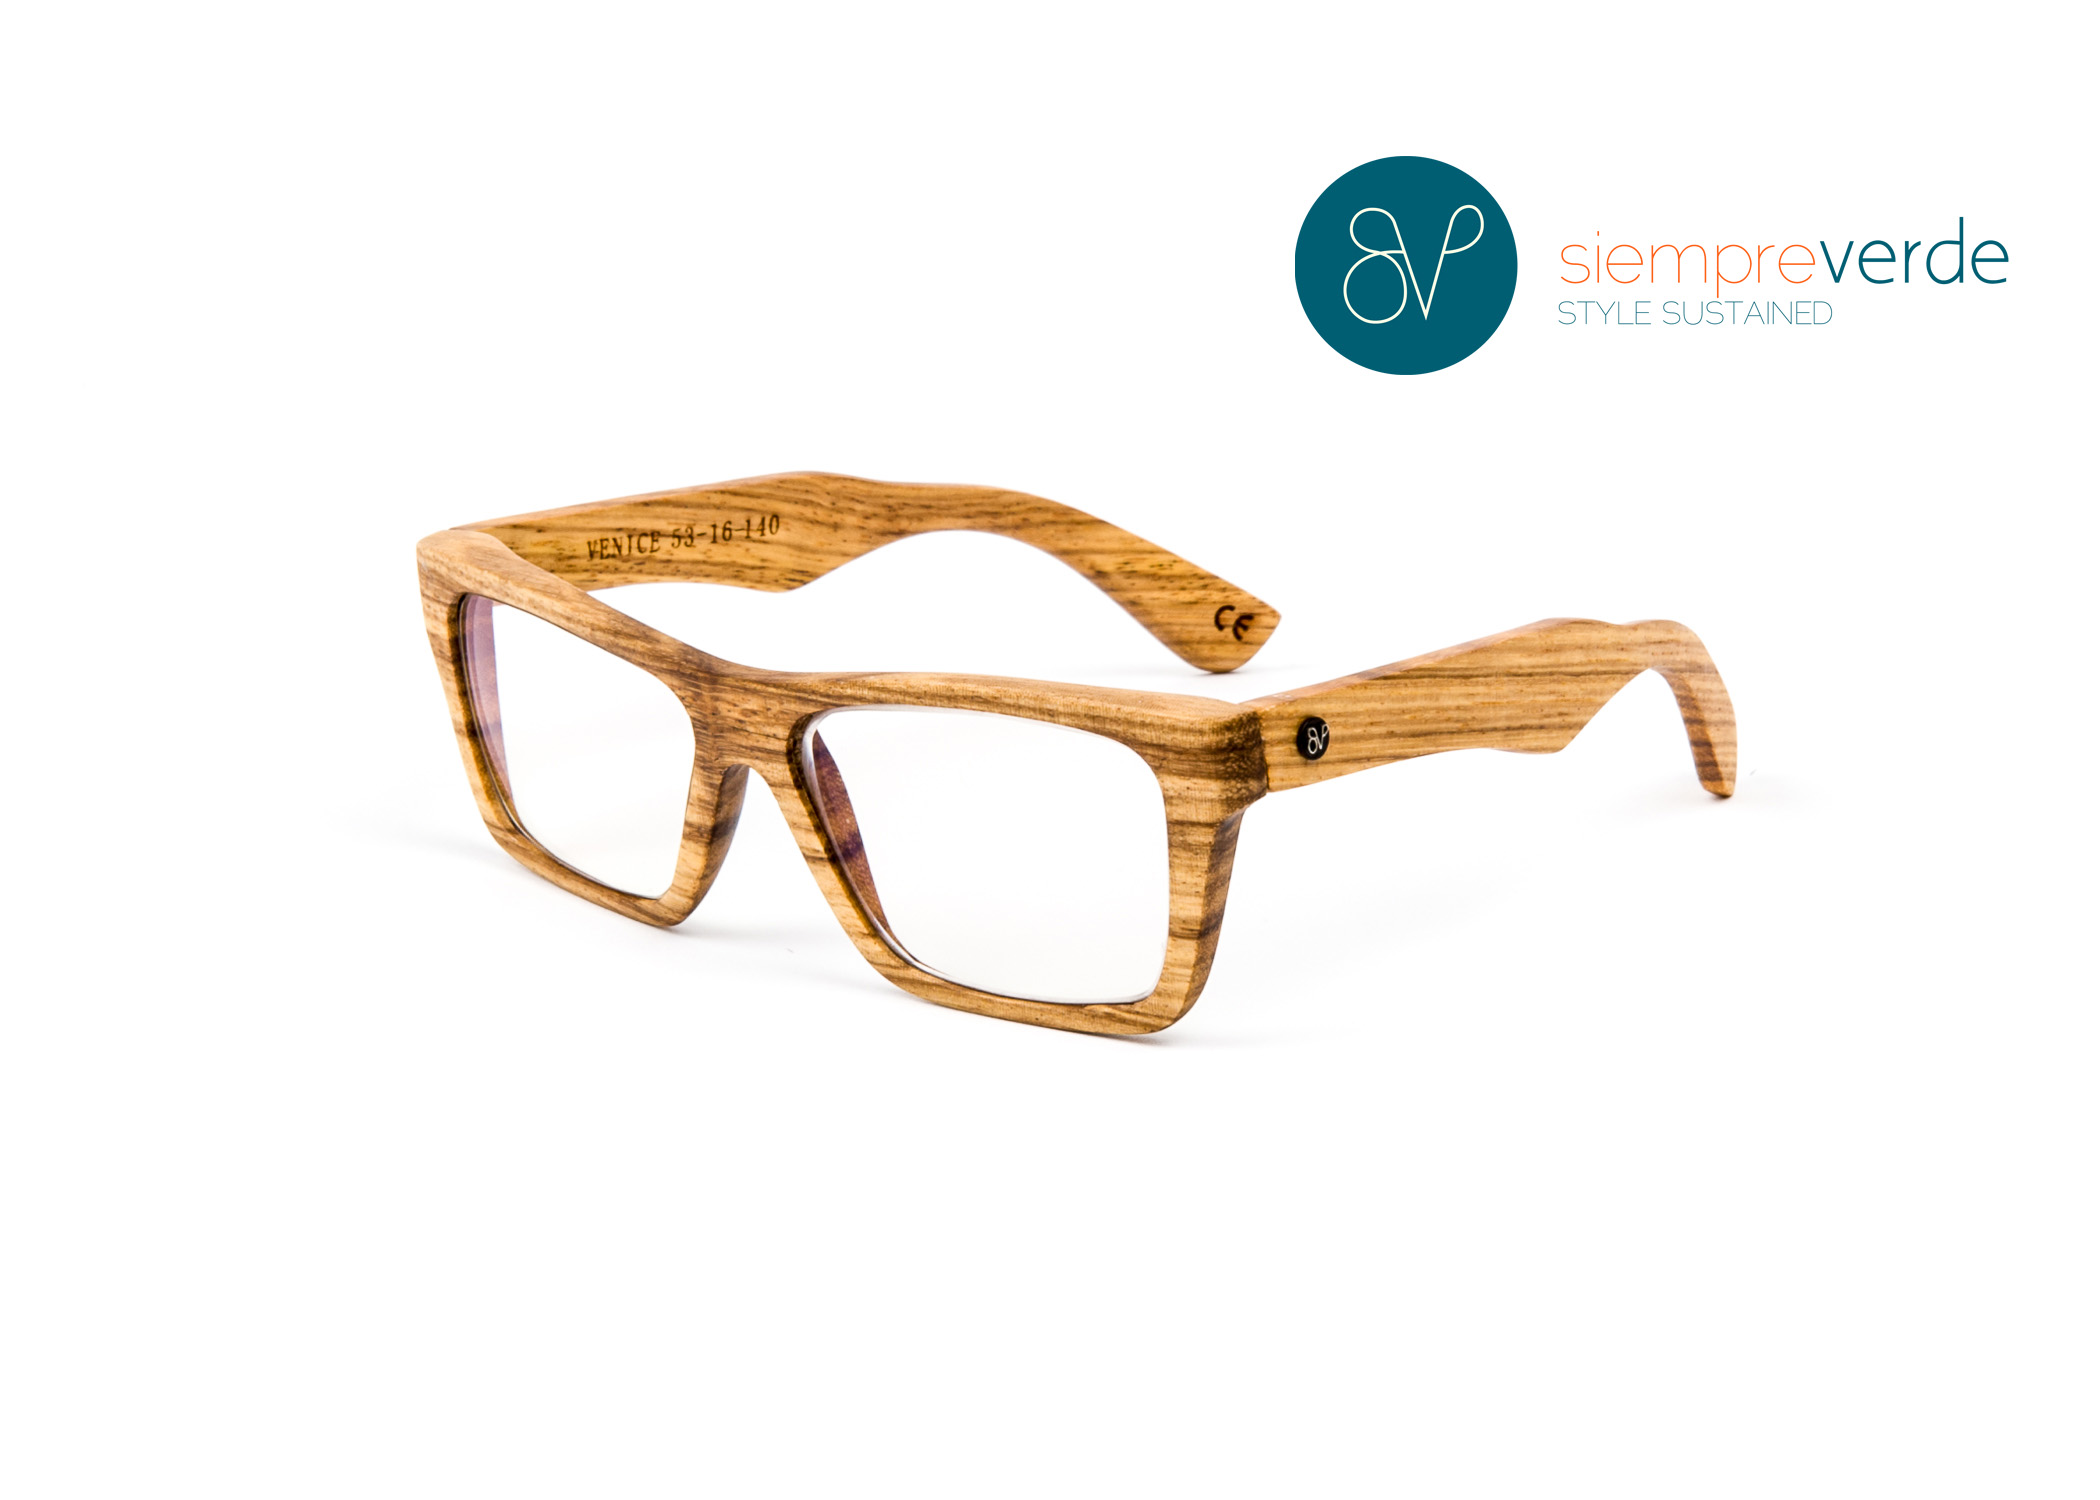 Siempre Verde Launches the Madera Collection: Wood Eyewear with Style